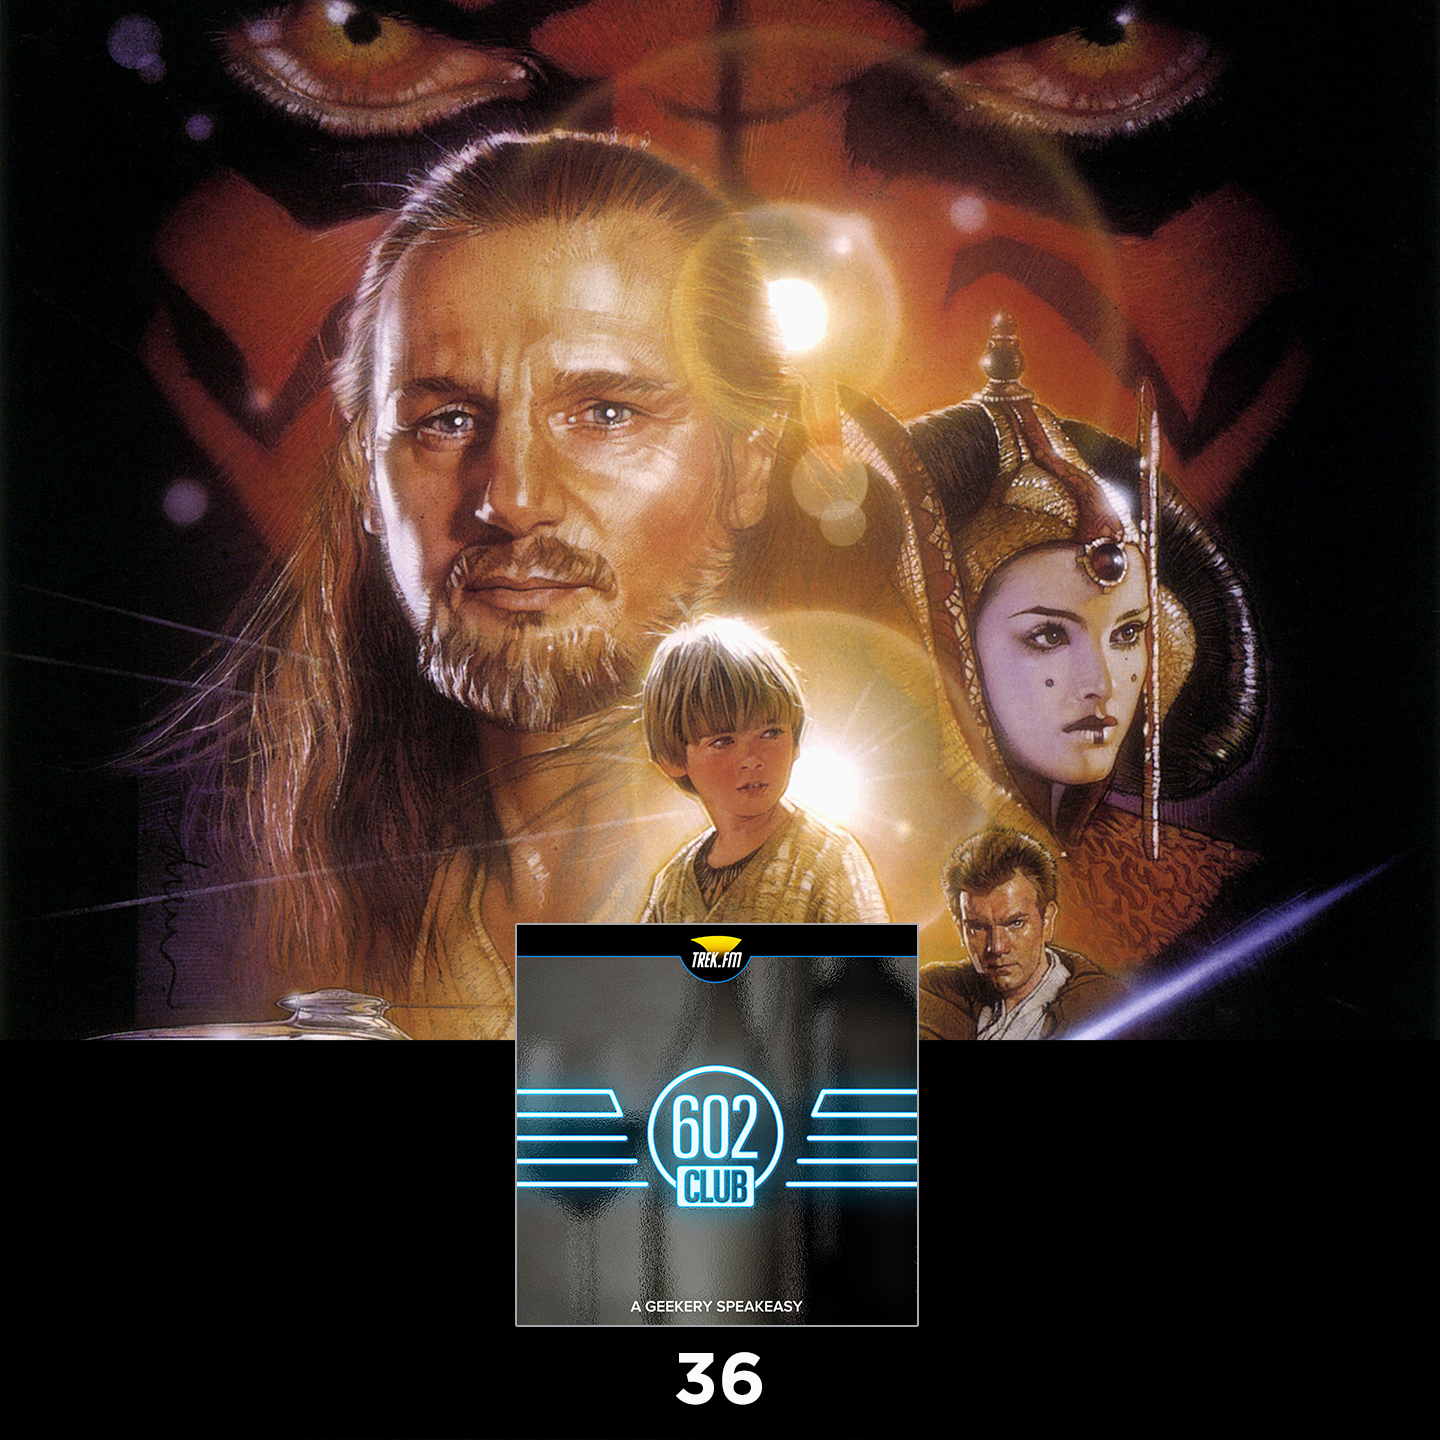 36: House of Cards in a Galaxy Far, Far Away